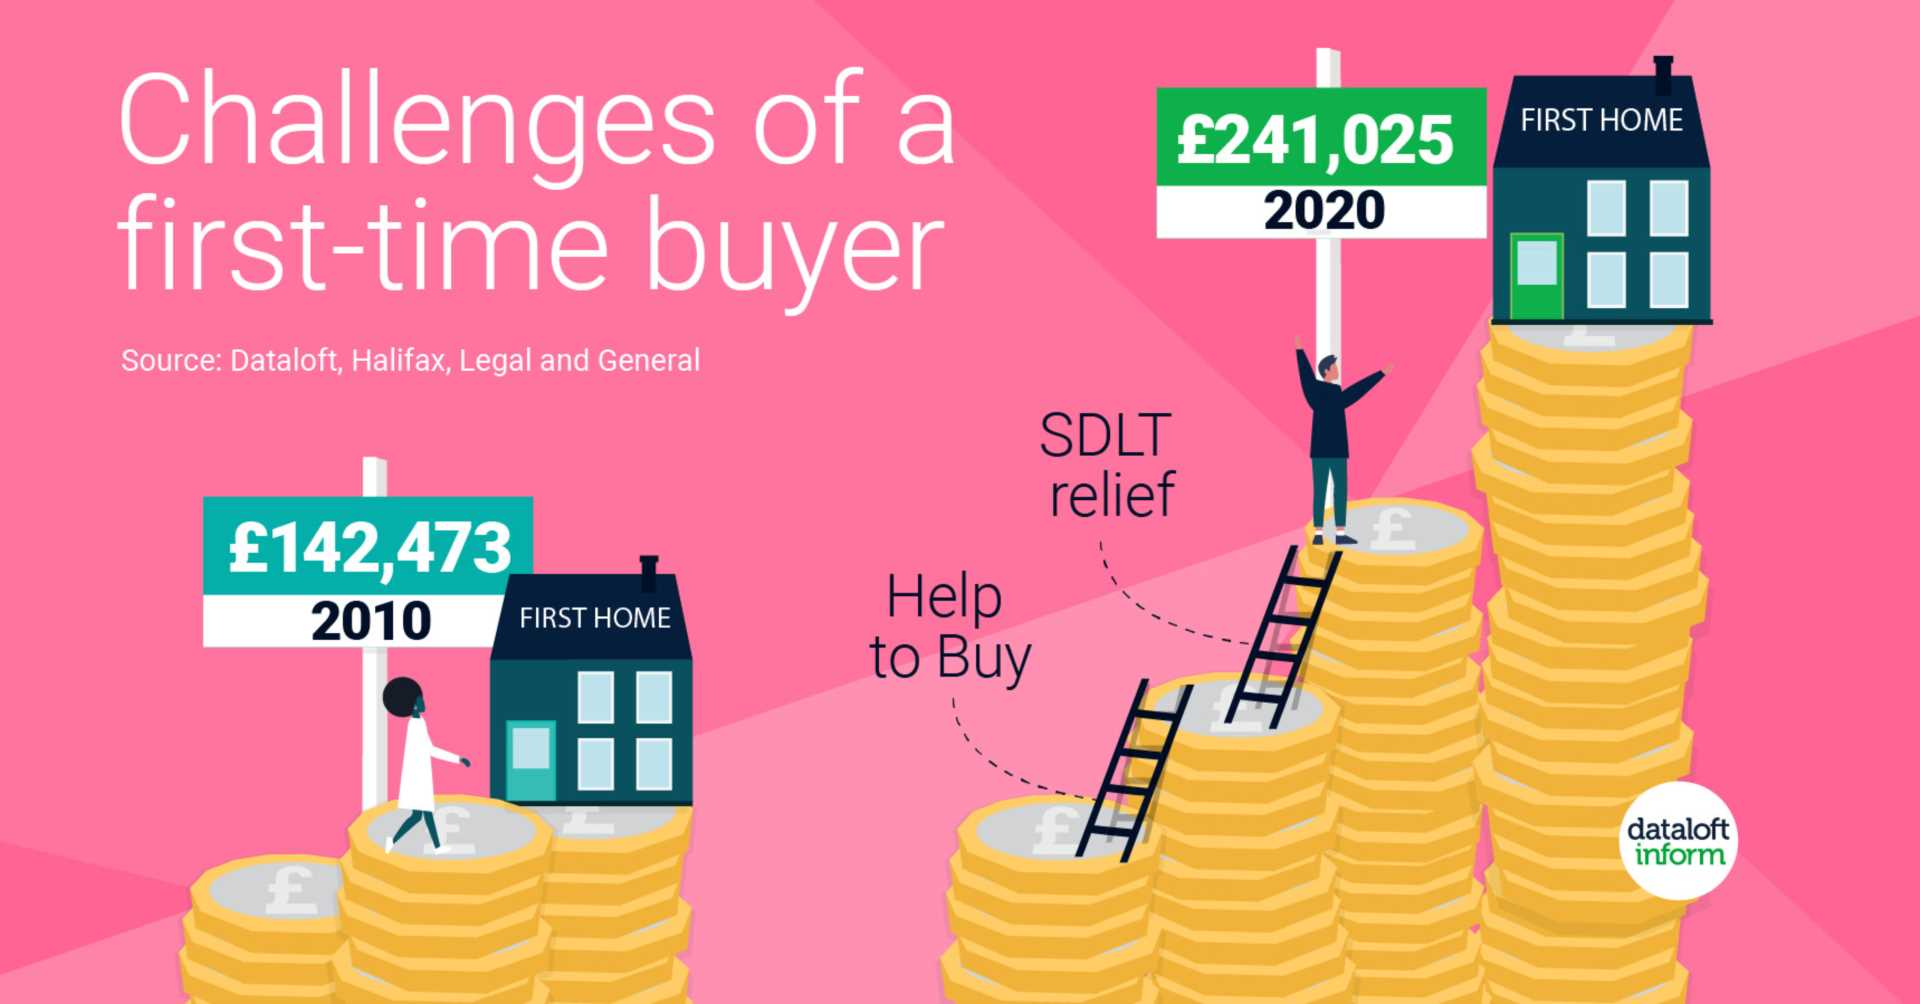 Challenges of a first-time buyer